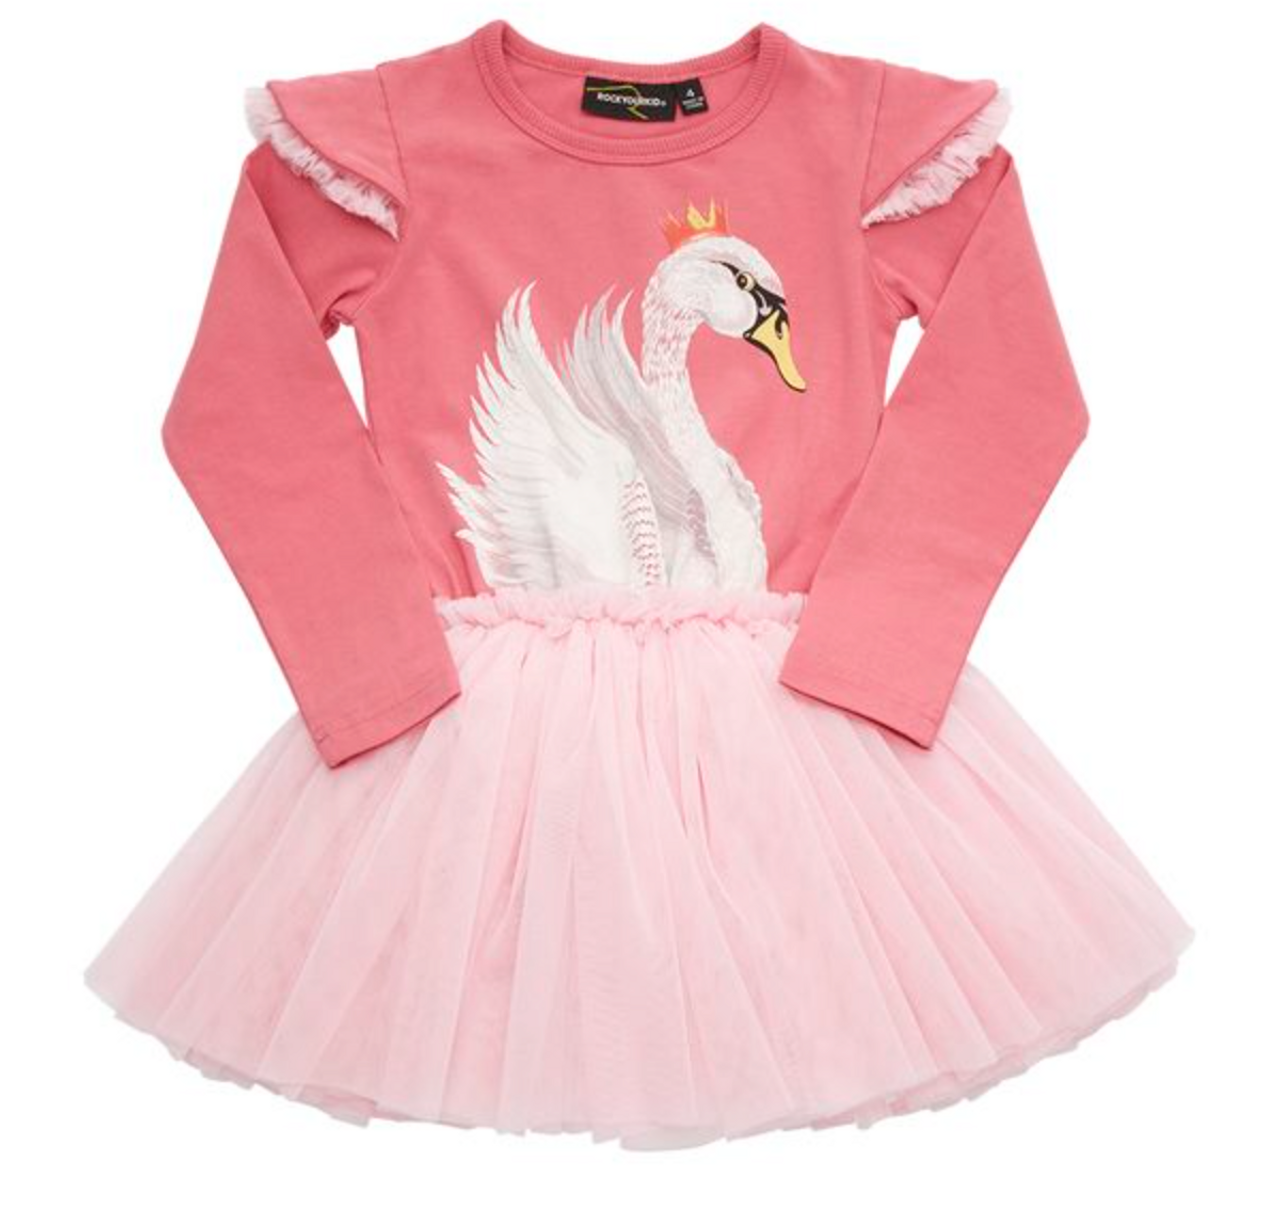 a2aa937a0 Rock Your Baby Swan Lake Circus Dress